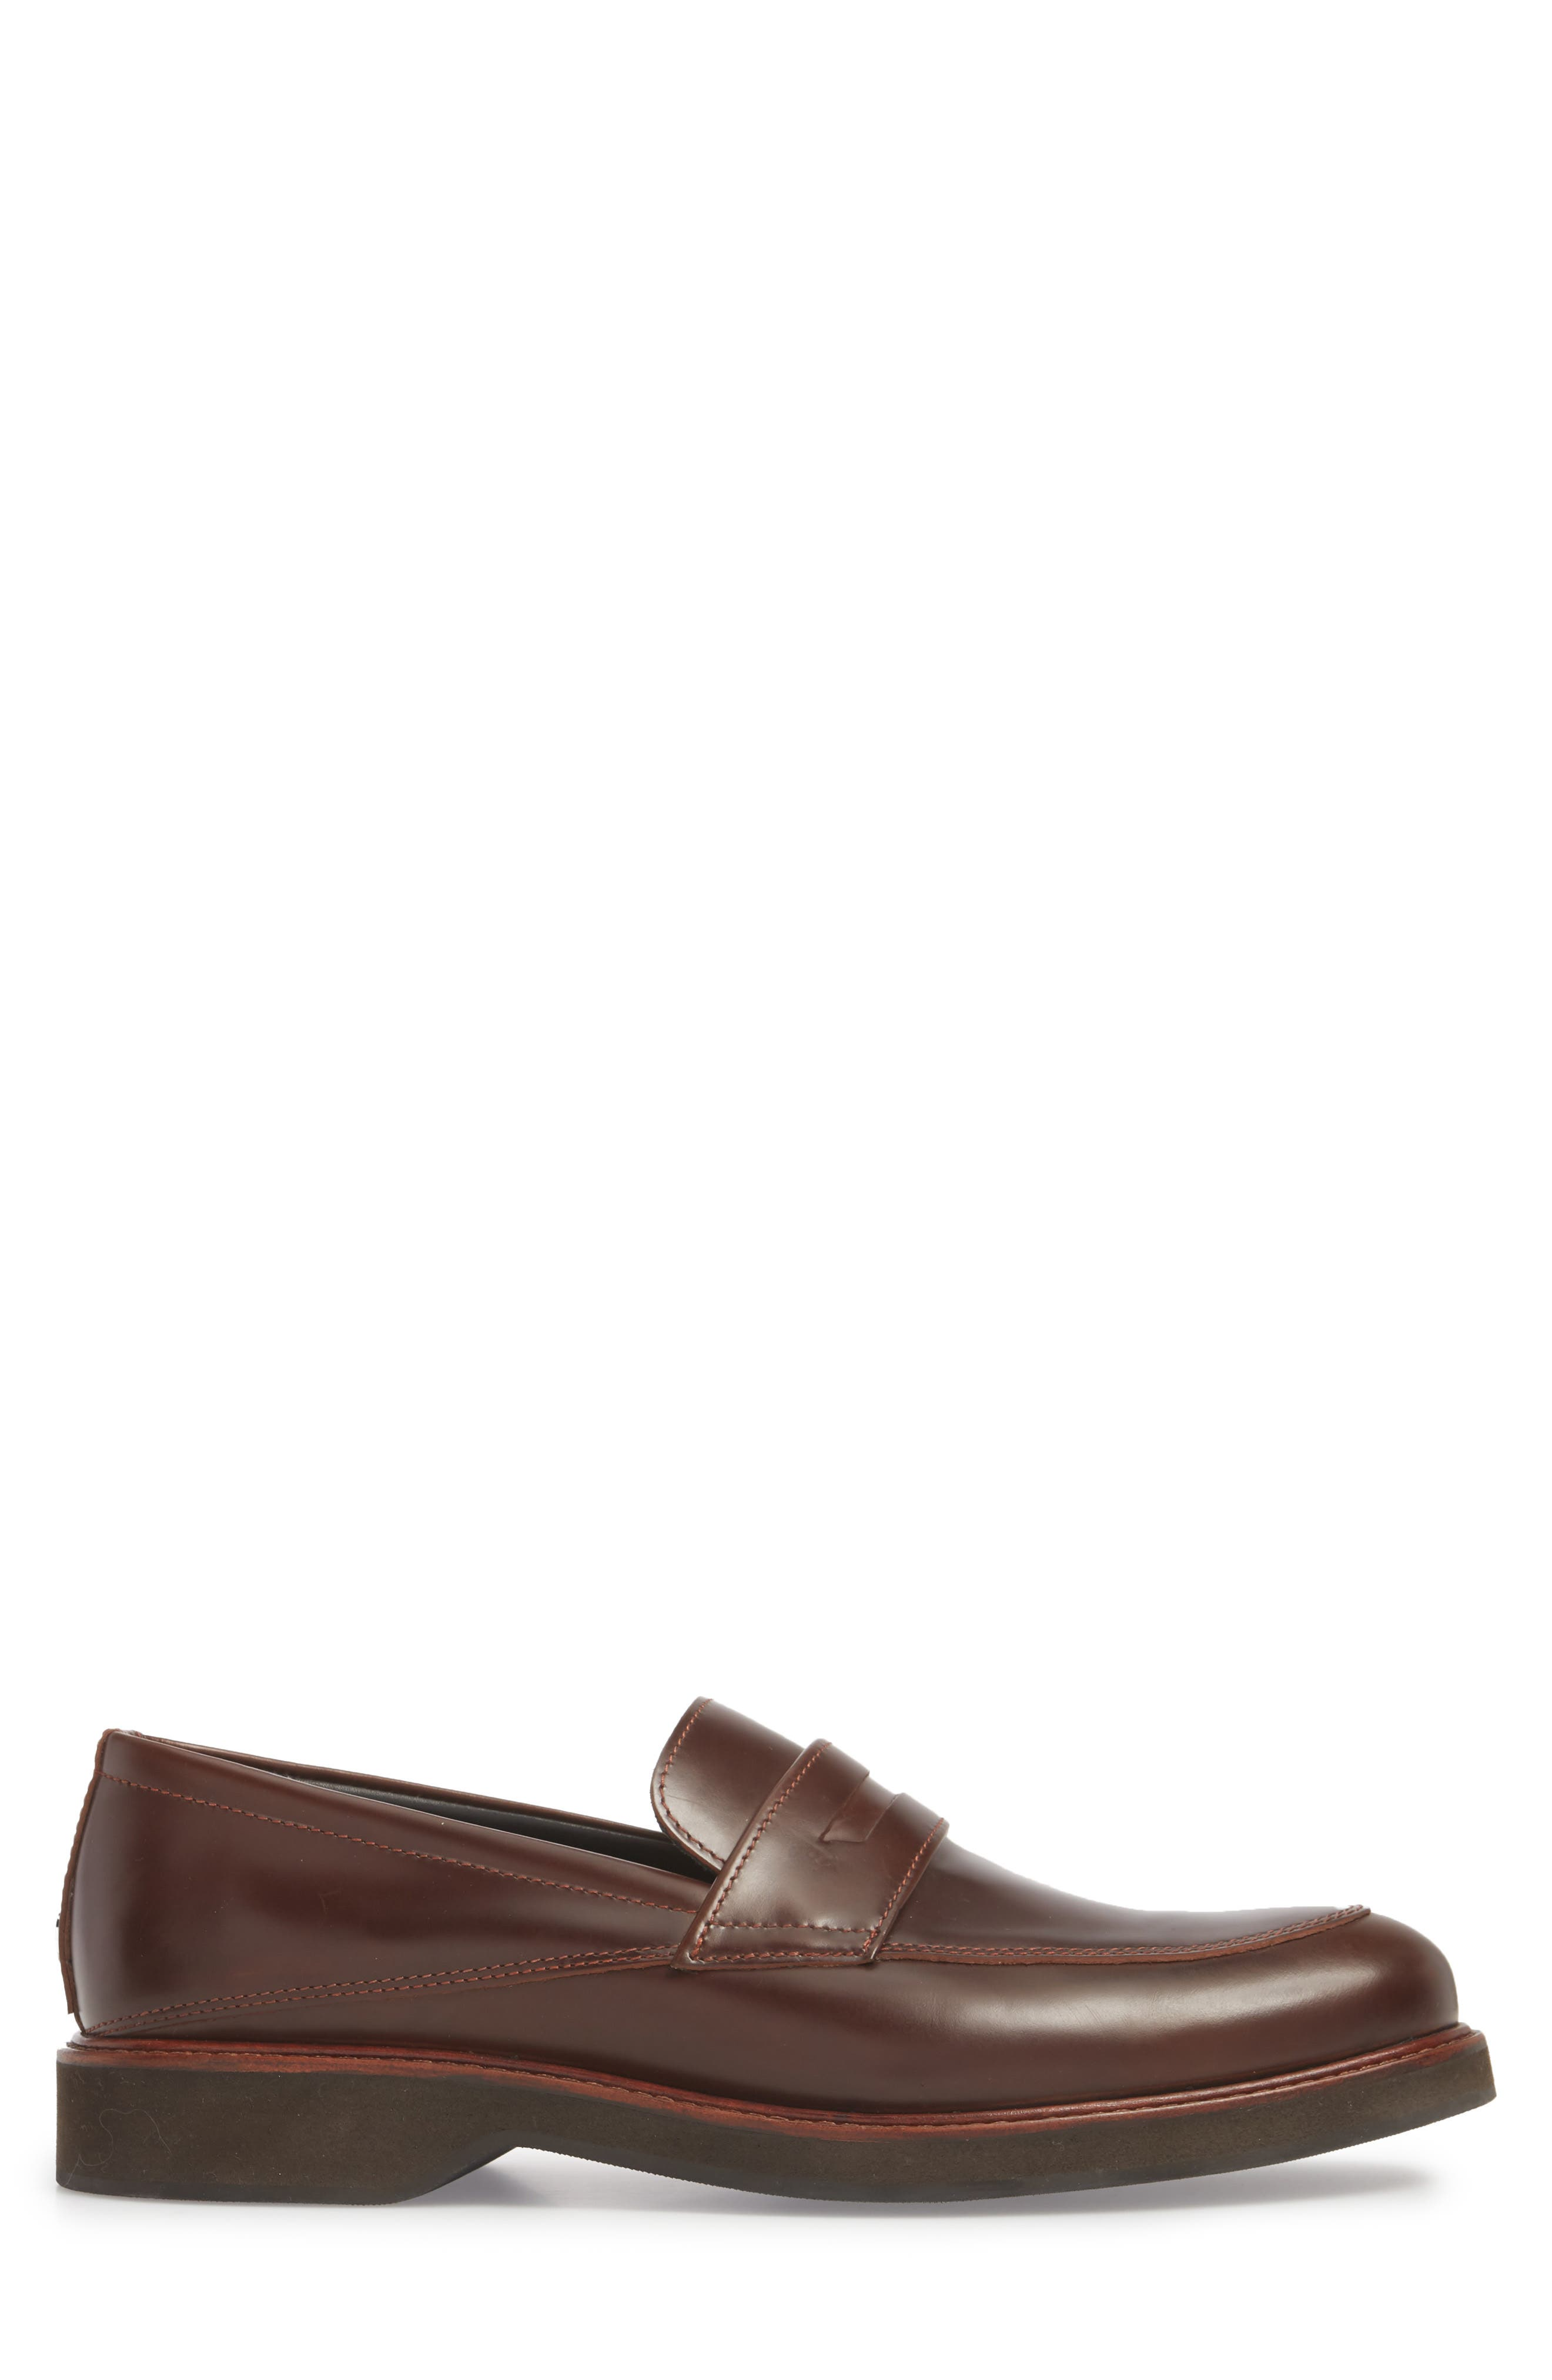 'Marcos' Loafer,                             Alternate thumbnail 3, color,                             Multi Brown/ Brown